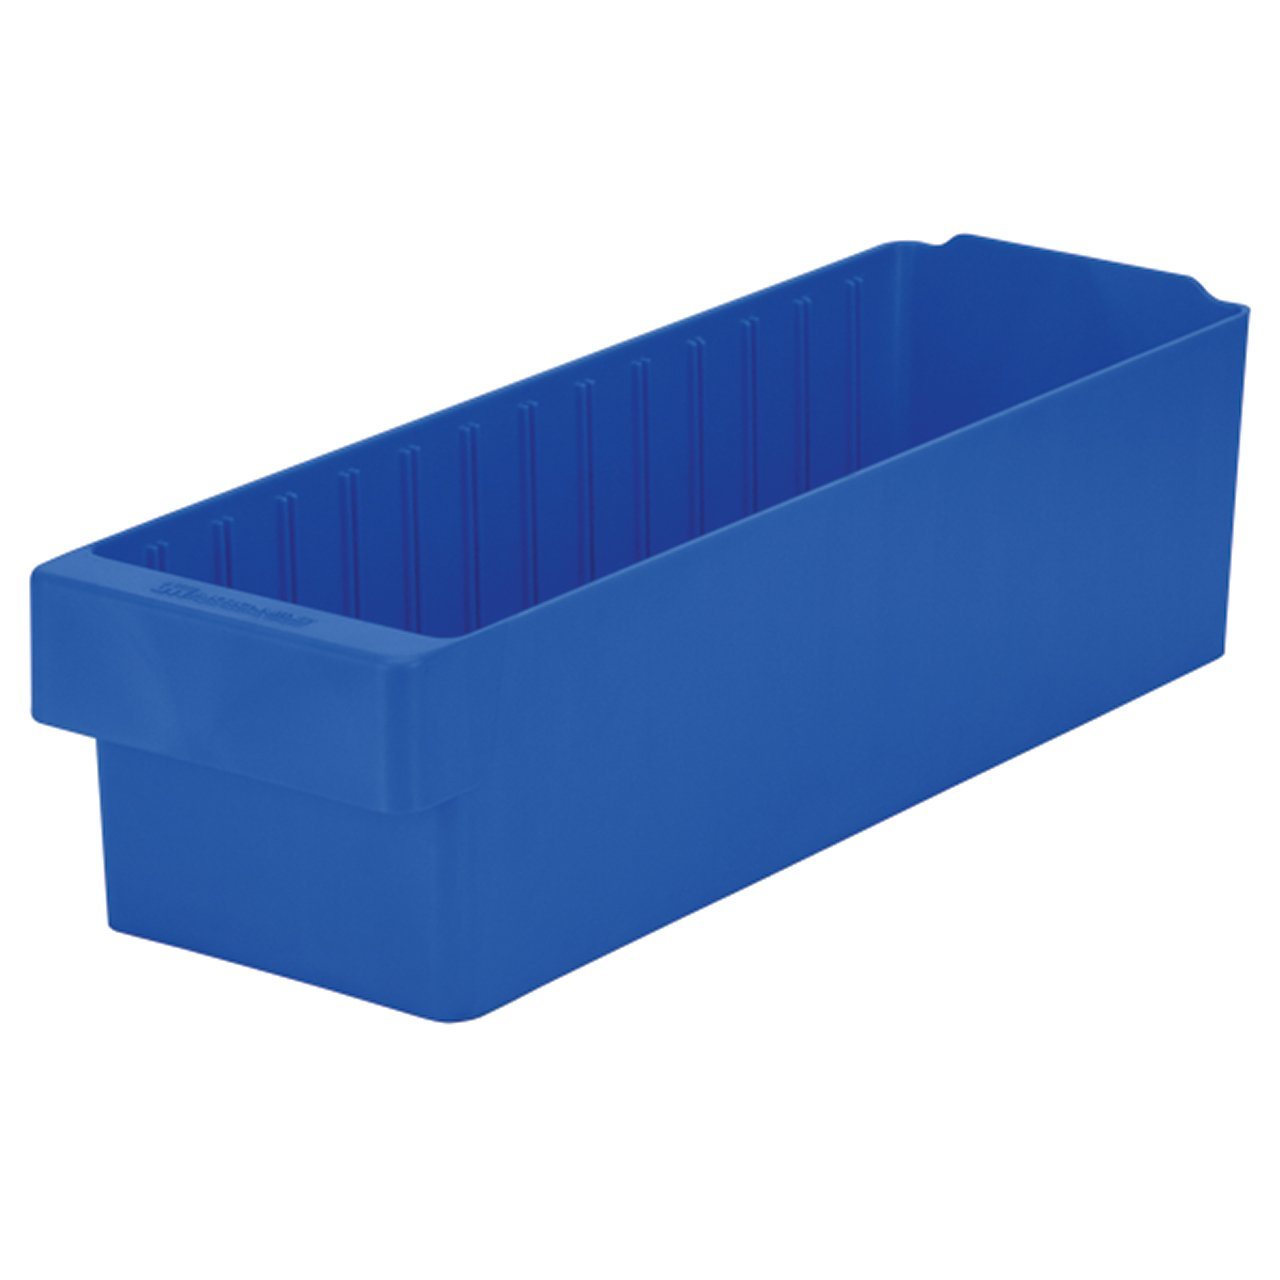 Akro-Mils 31168 AkroDrawer Plastic Storage Drawer, 17-5/8'' L x 5-9/16'' W x 4-5/8'' H, Blue, Case of 6